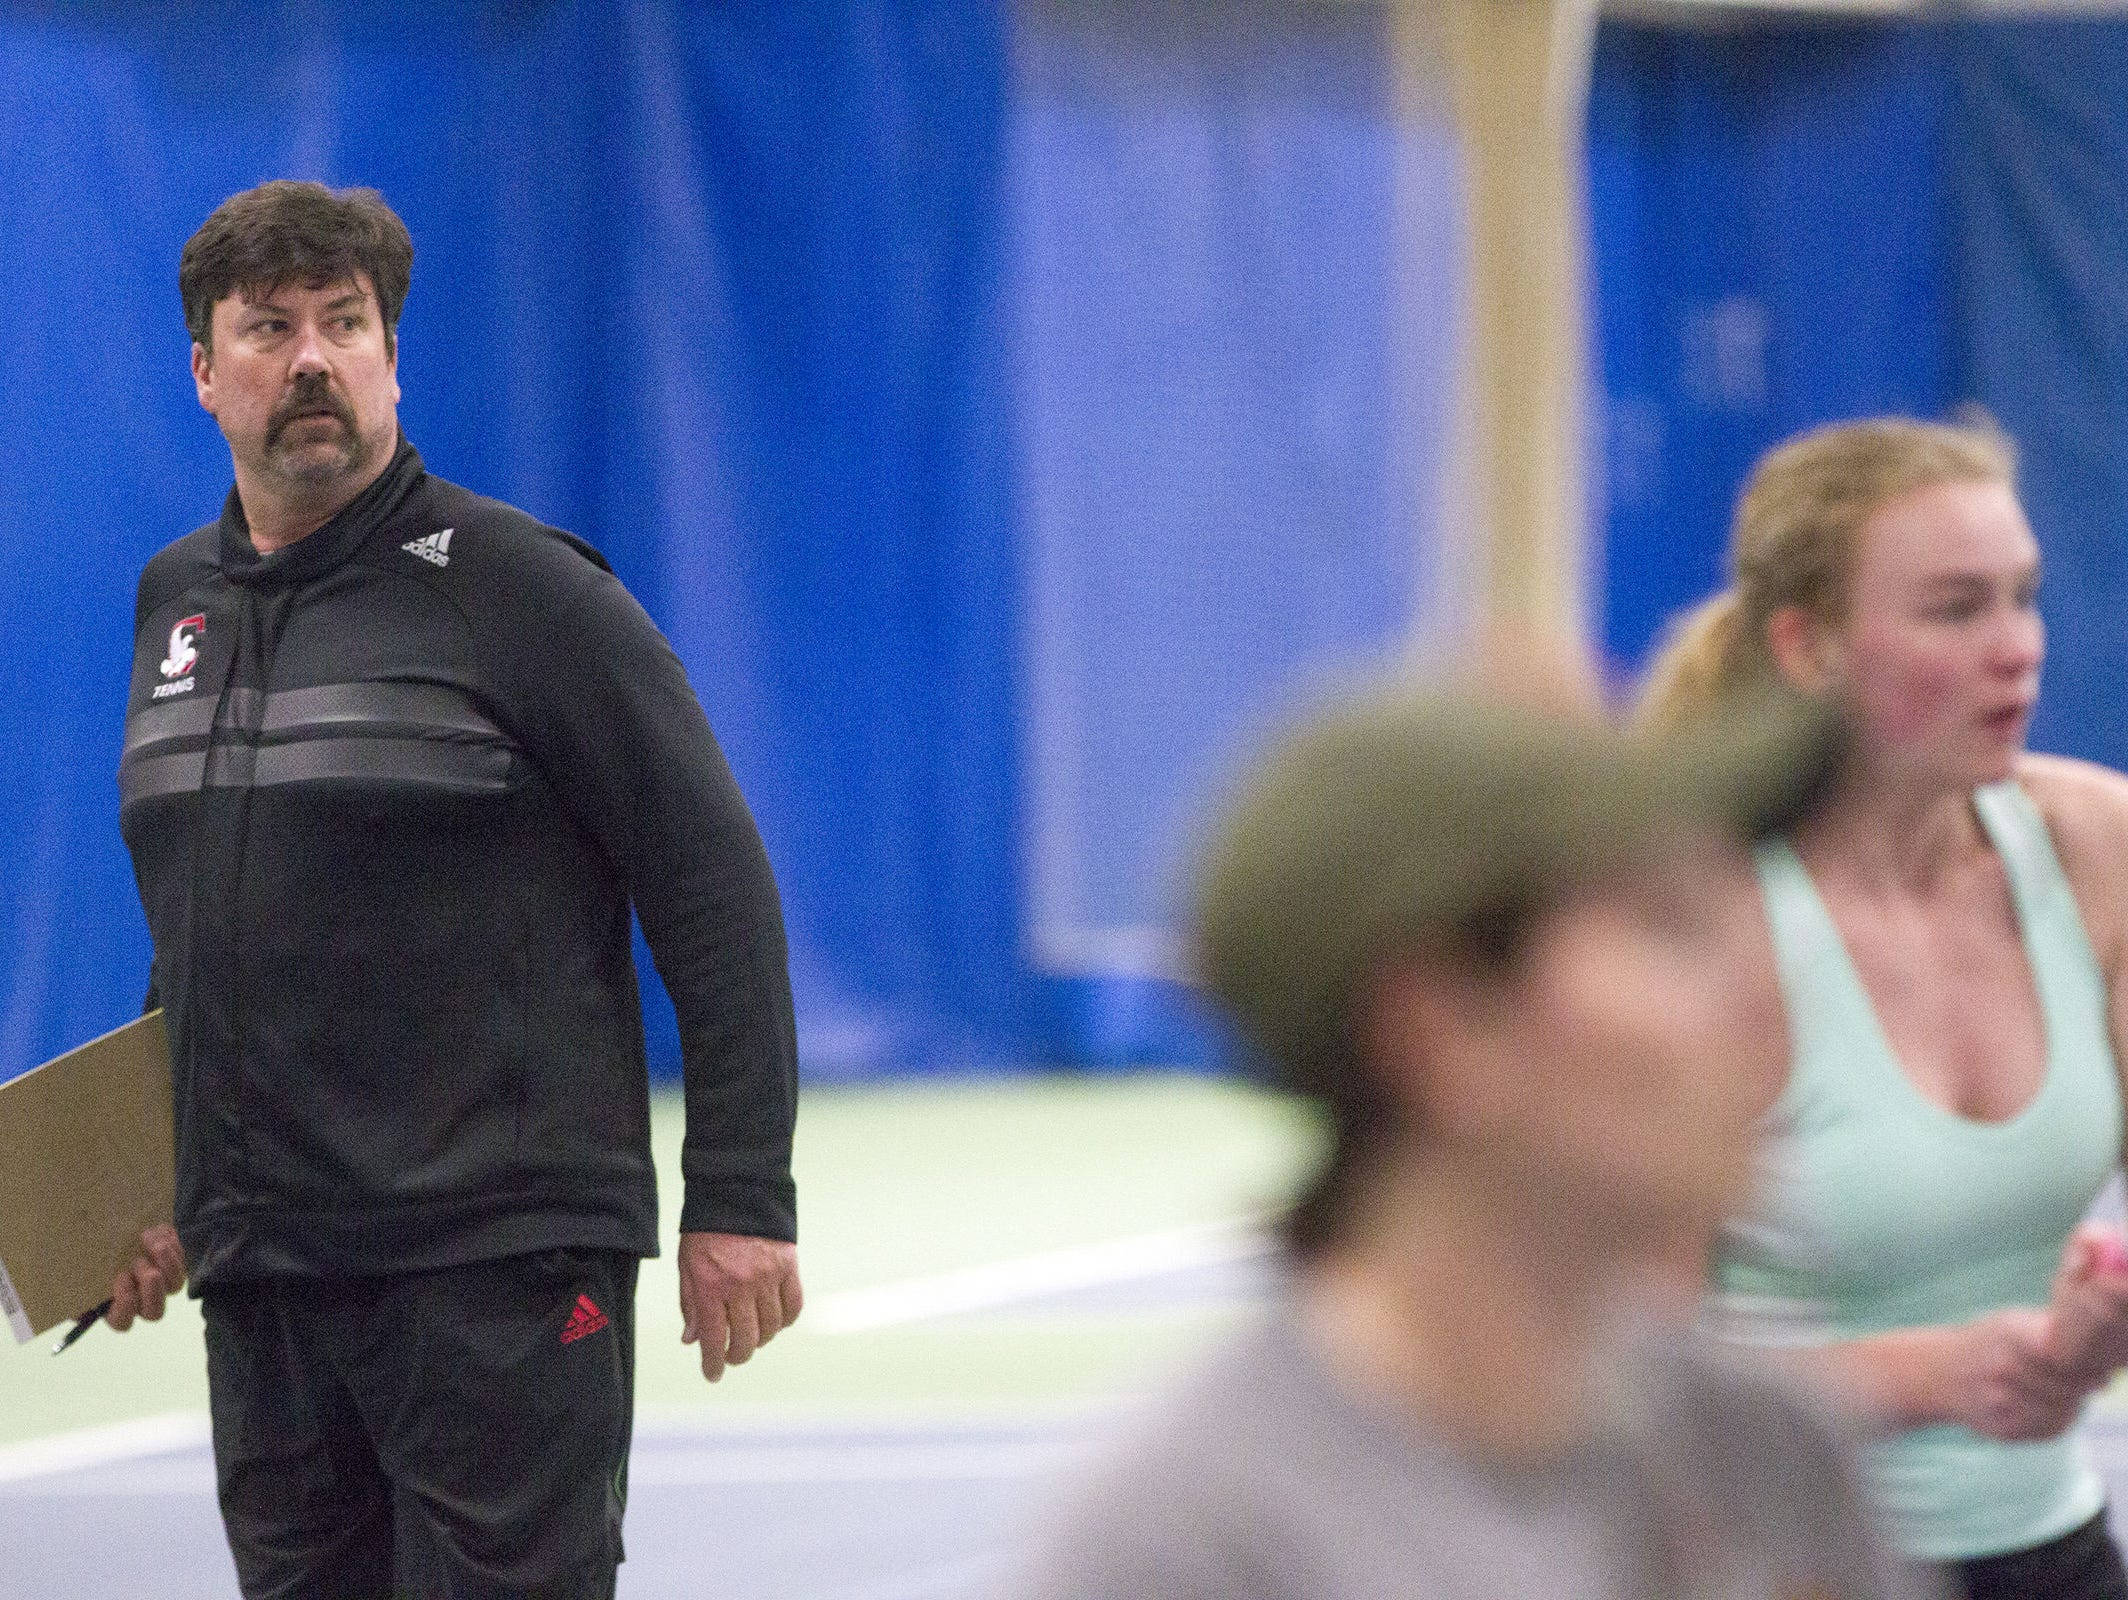 City High head coach Fred Pedersen watches his team practice inside the North Dodge Athletic Club on Tuesday.